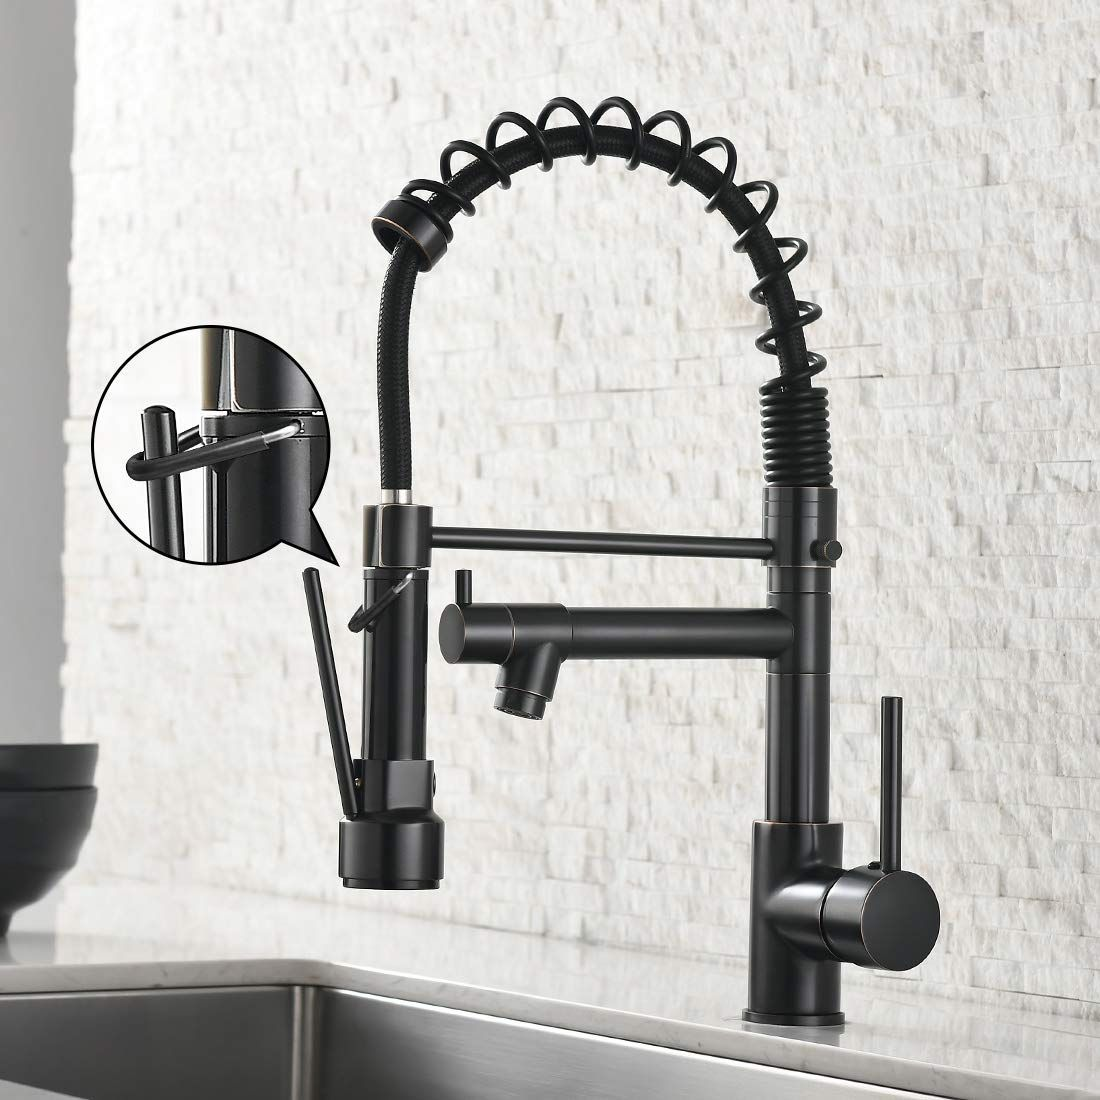 Spring Commercial Kitchen Sink Faucet Modern Single Handle Oil Rubbed Bronze Kitchen Faucets With Pull Down Sprayer Commercial Kitchen Sinks Bronze Kitchen Bronze Kitchen Faucet